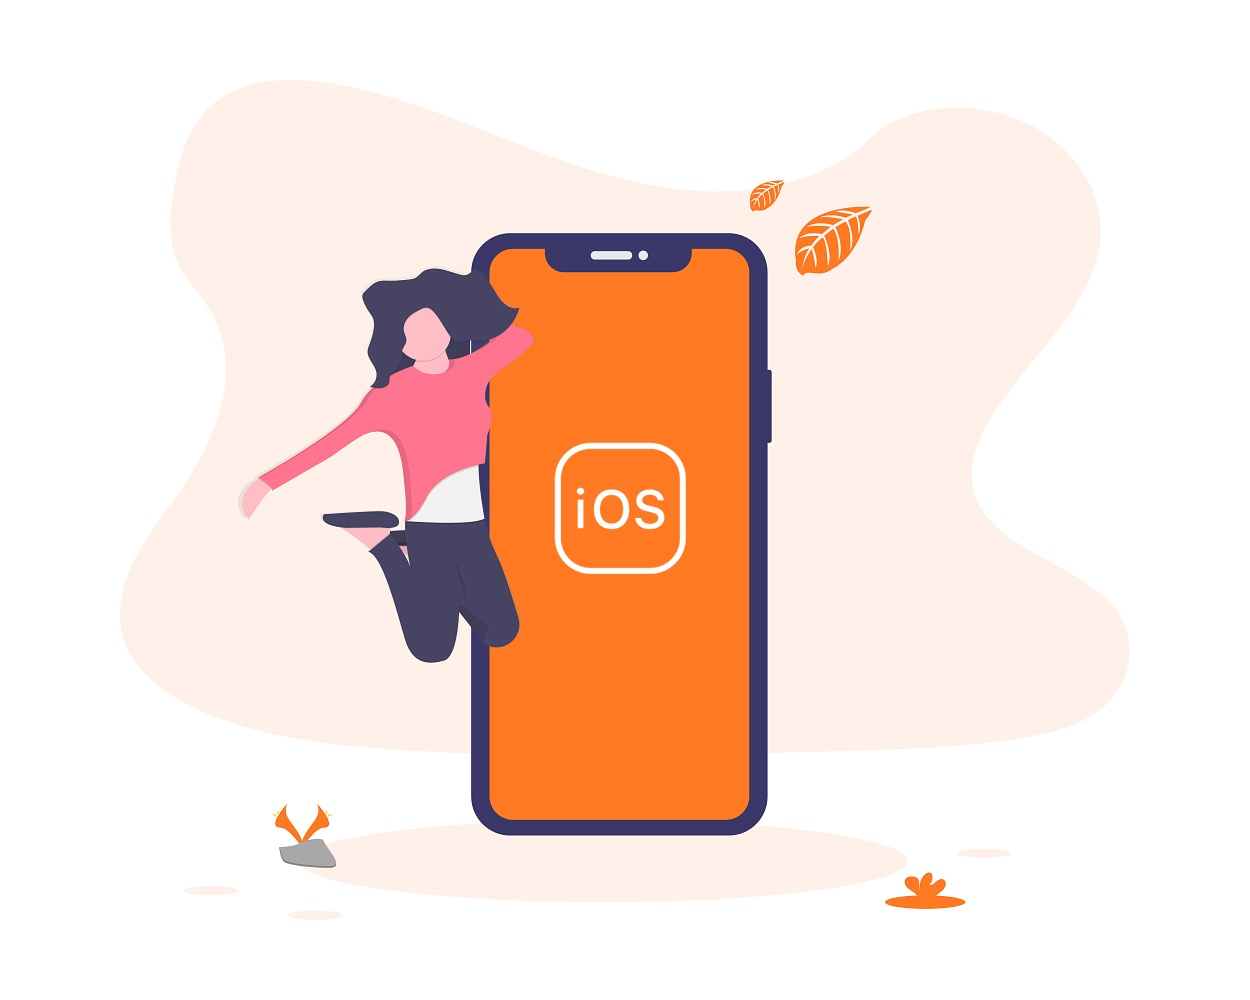 Convertion to ios application